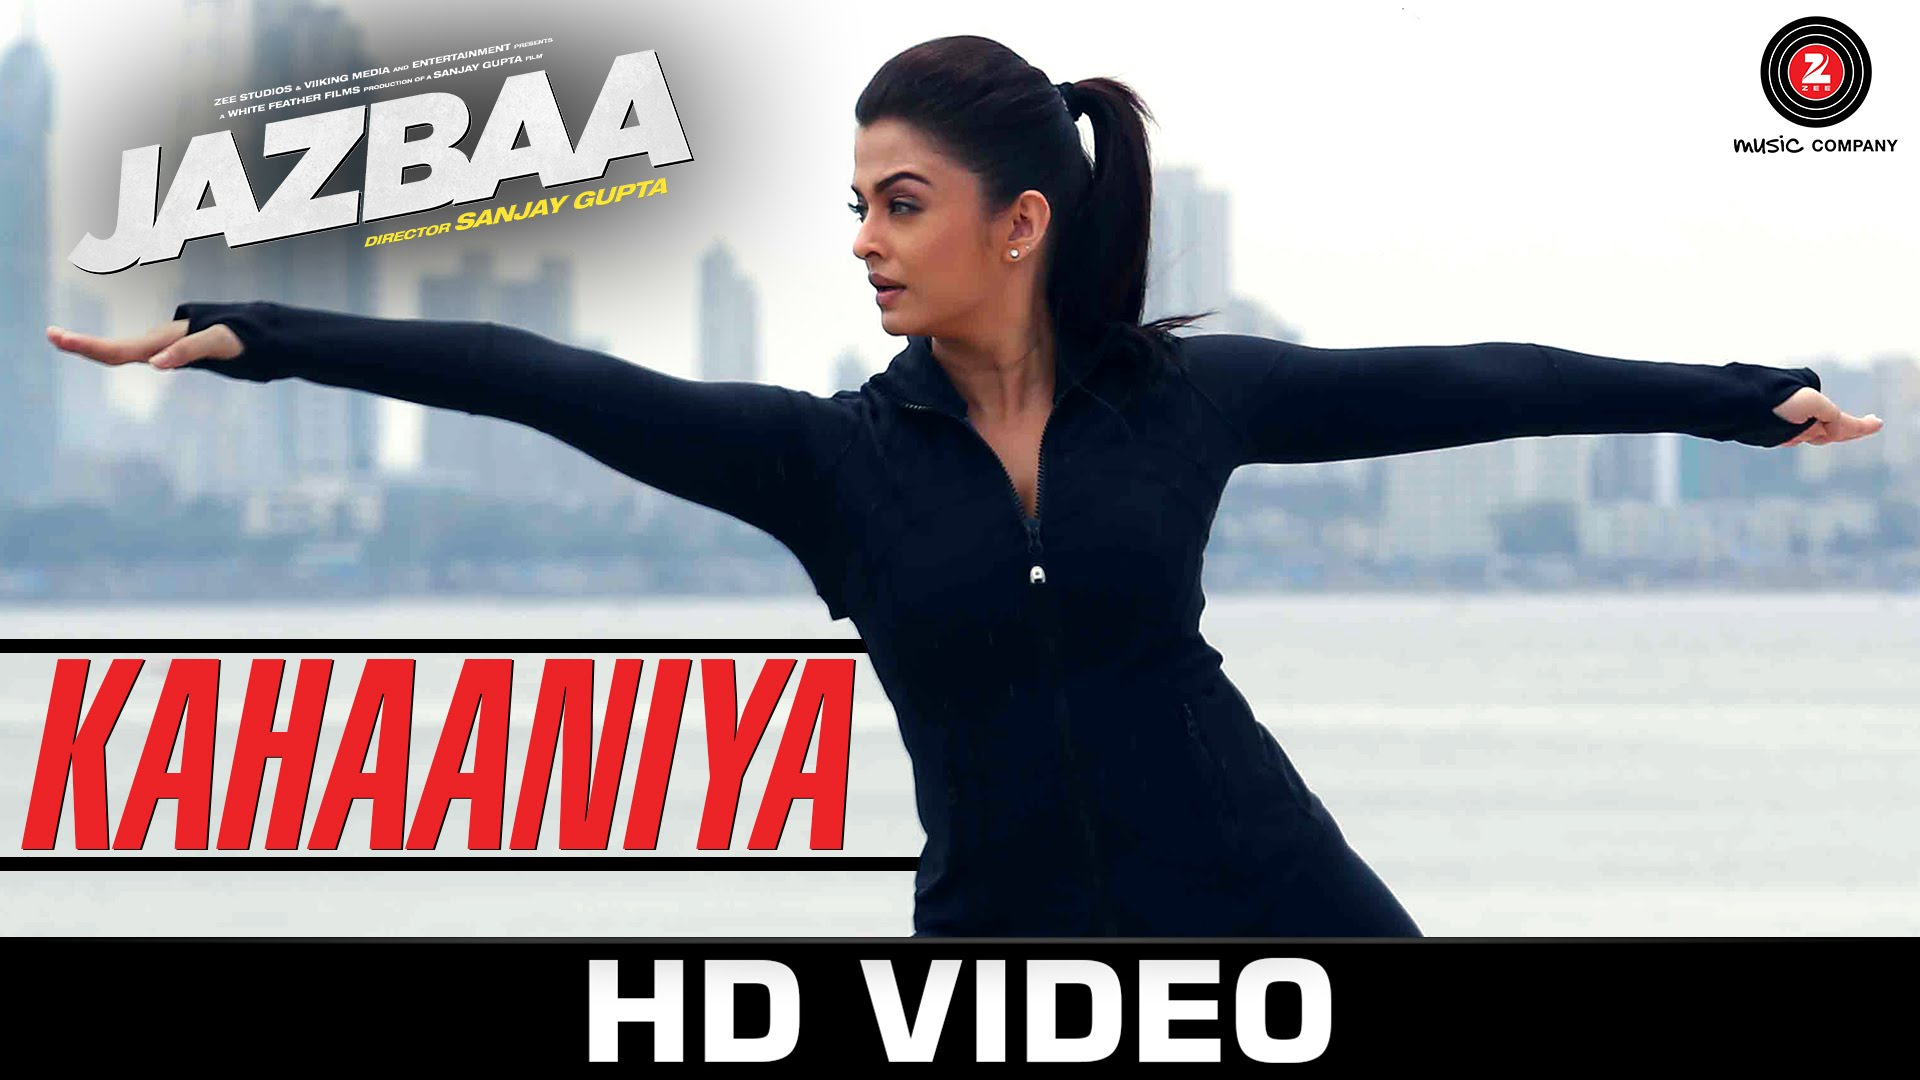 New Song Alert | 'Kahaaniya' from Jazbaa